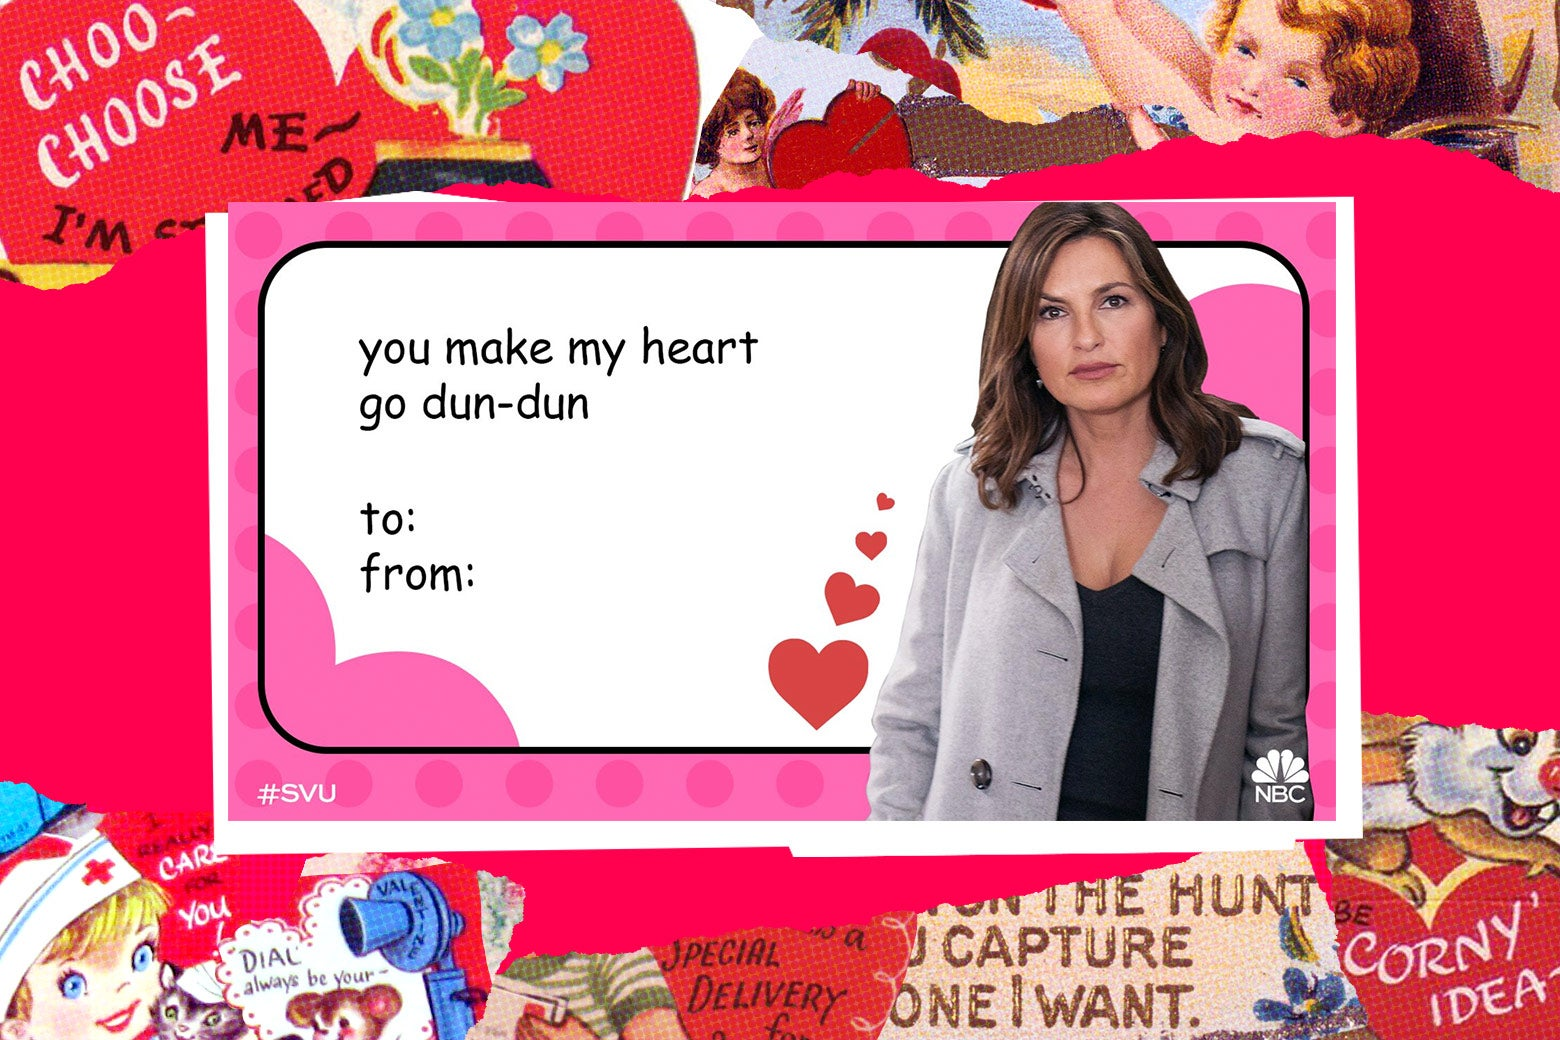 A valentine's day card from Law and Order: SVU.